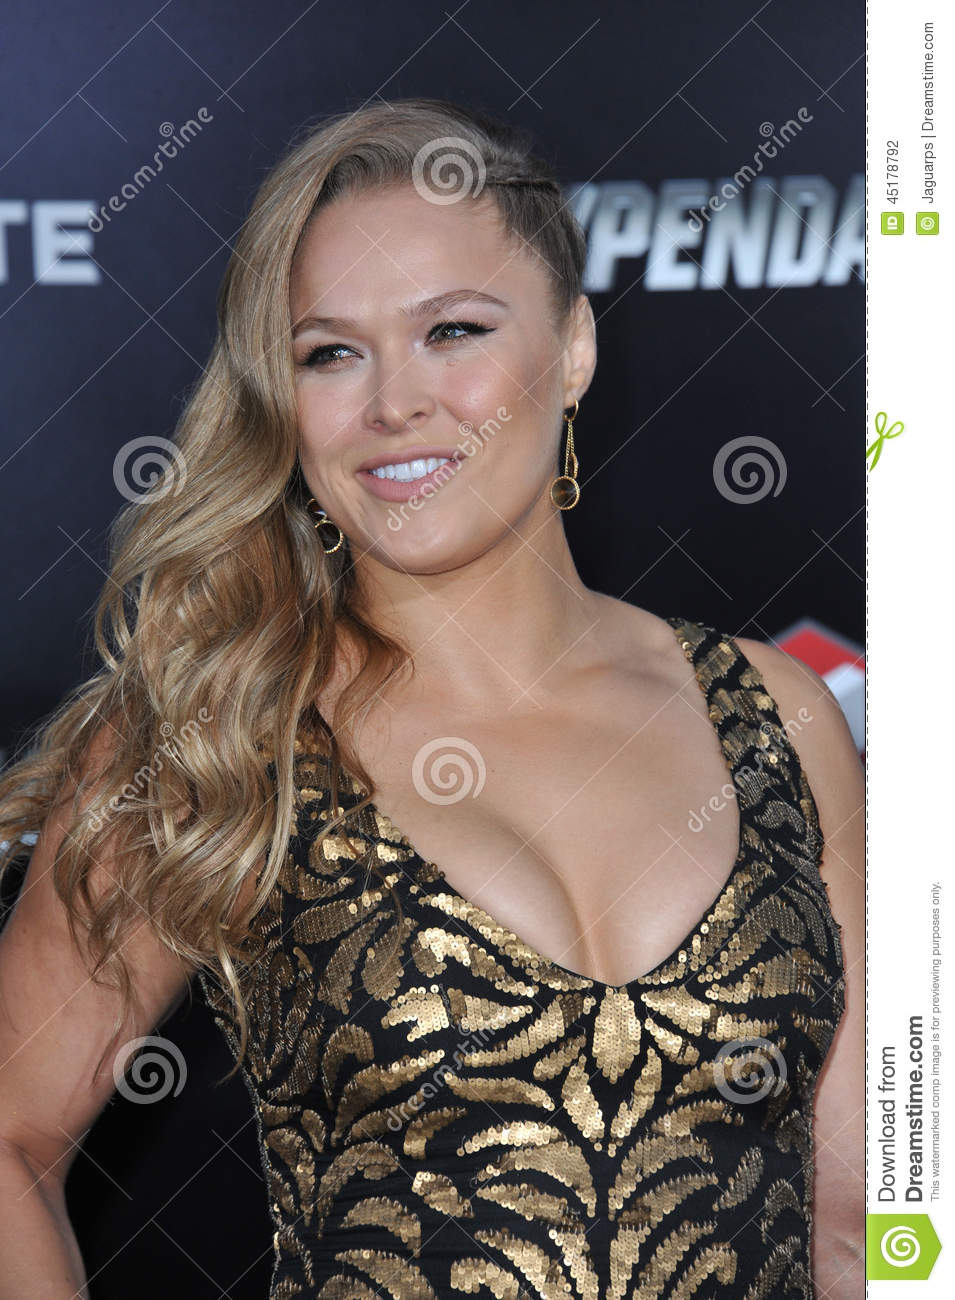 Cleavage Ronda Rousey nude photos 2019